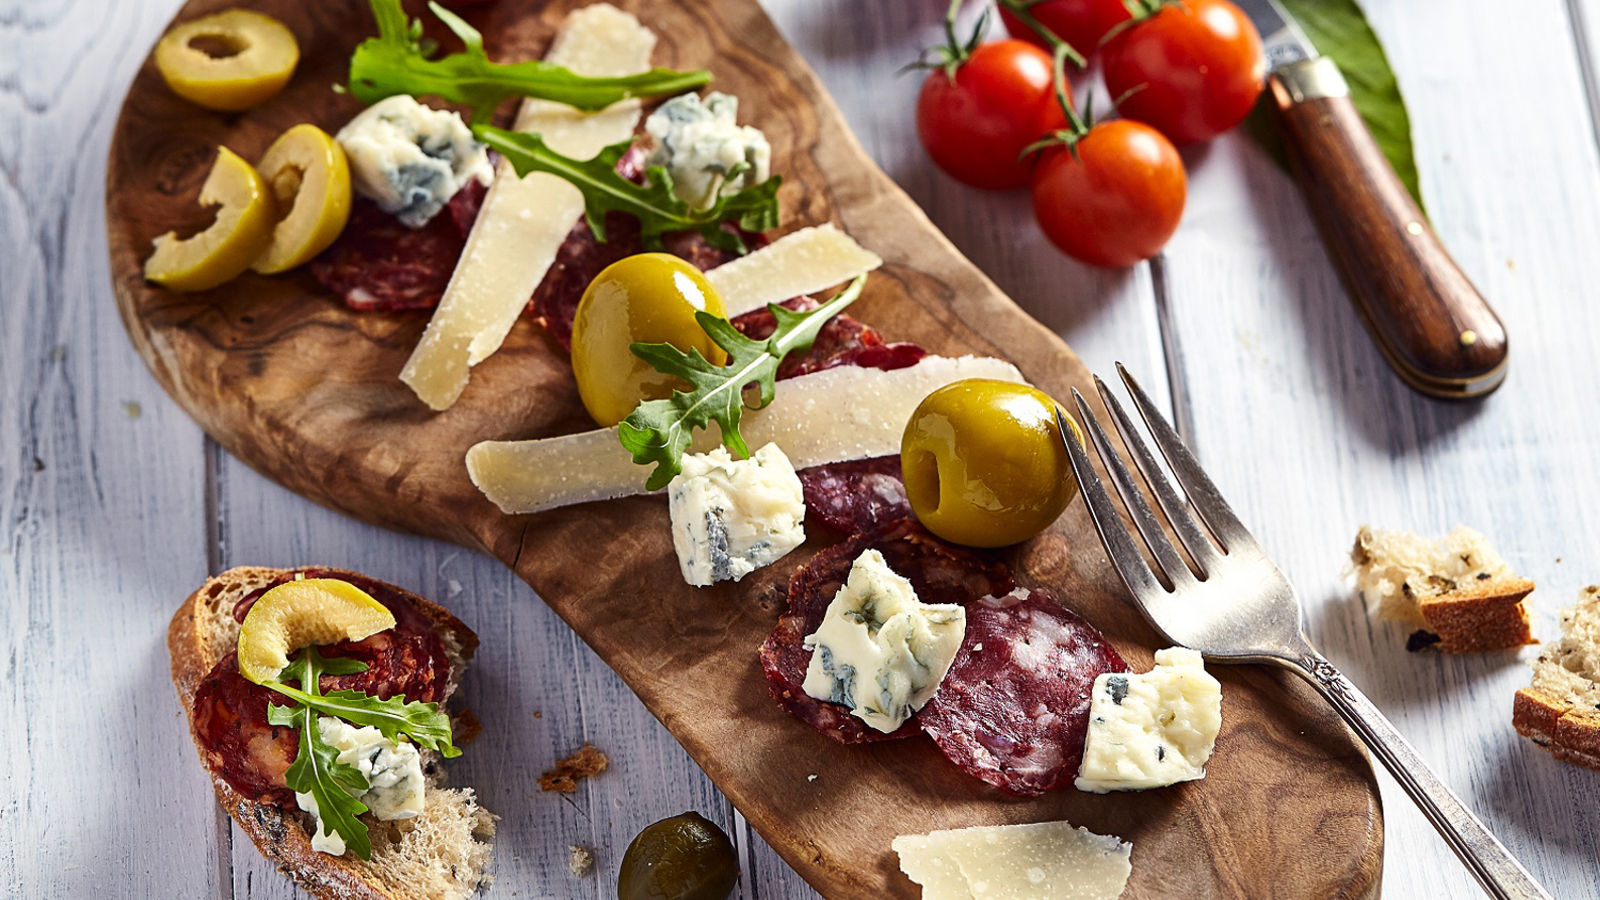 Antipasti selection of sliced charcuterie, rosemary gordal olives, aged parmesan & gorgonzola